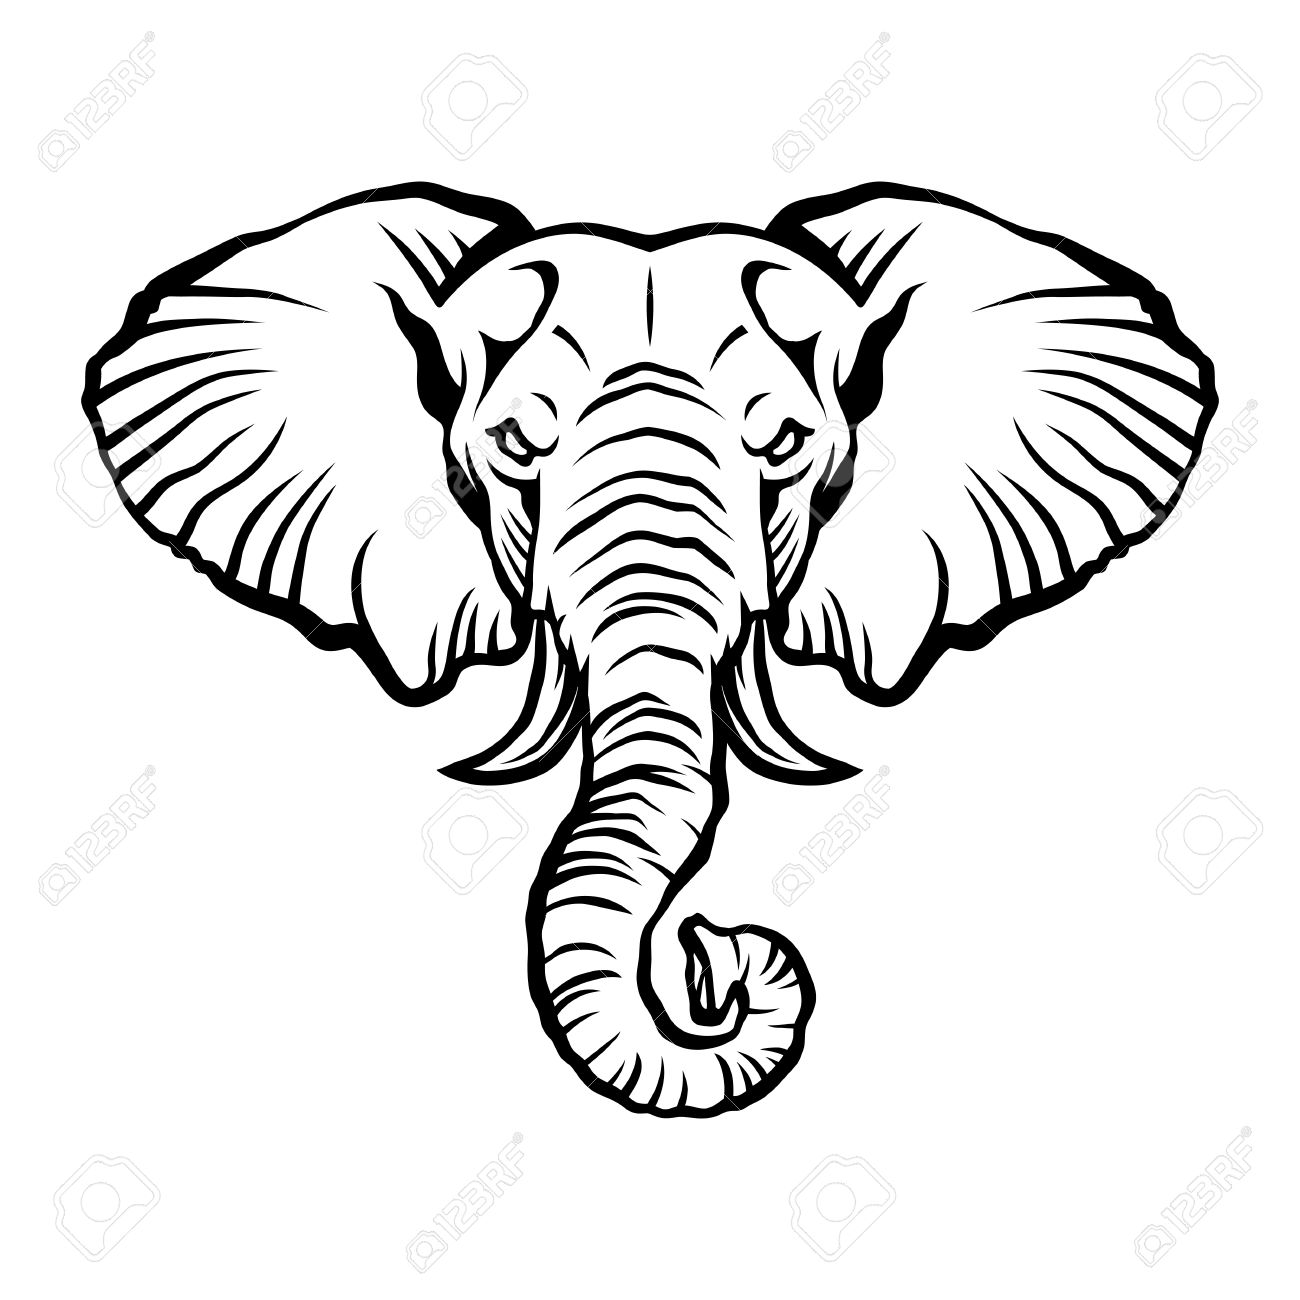 1300x1300 Elephant Head Stock Photos. Royalty Free Business Images